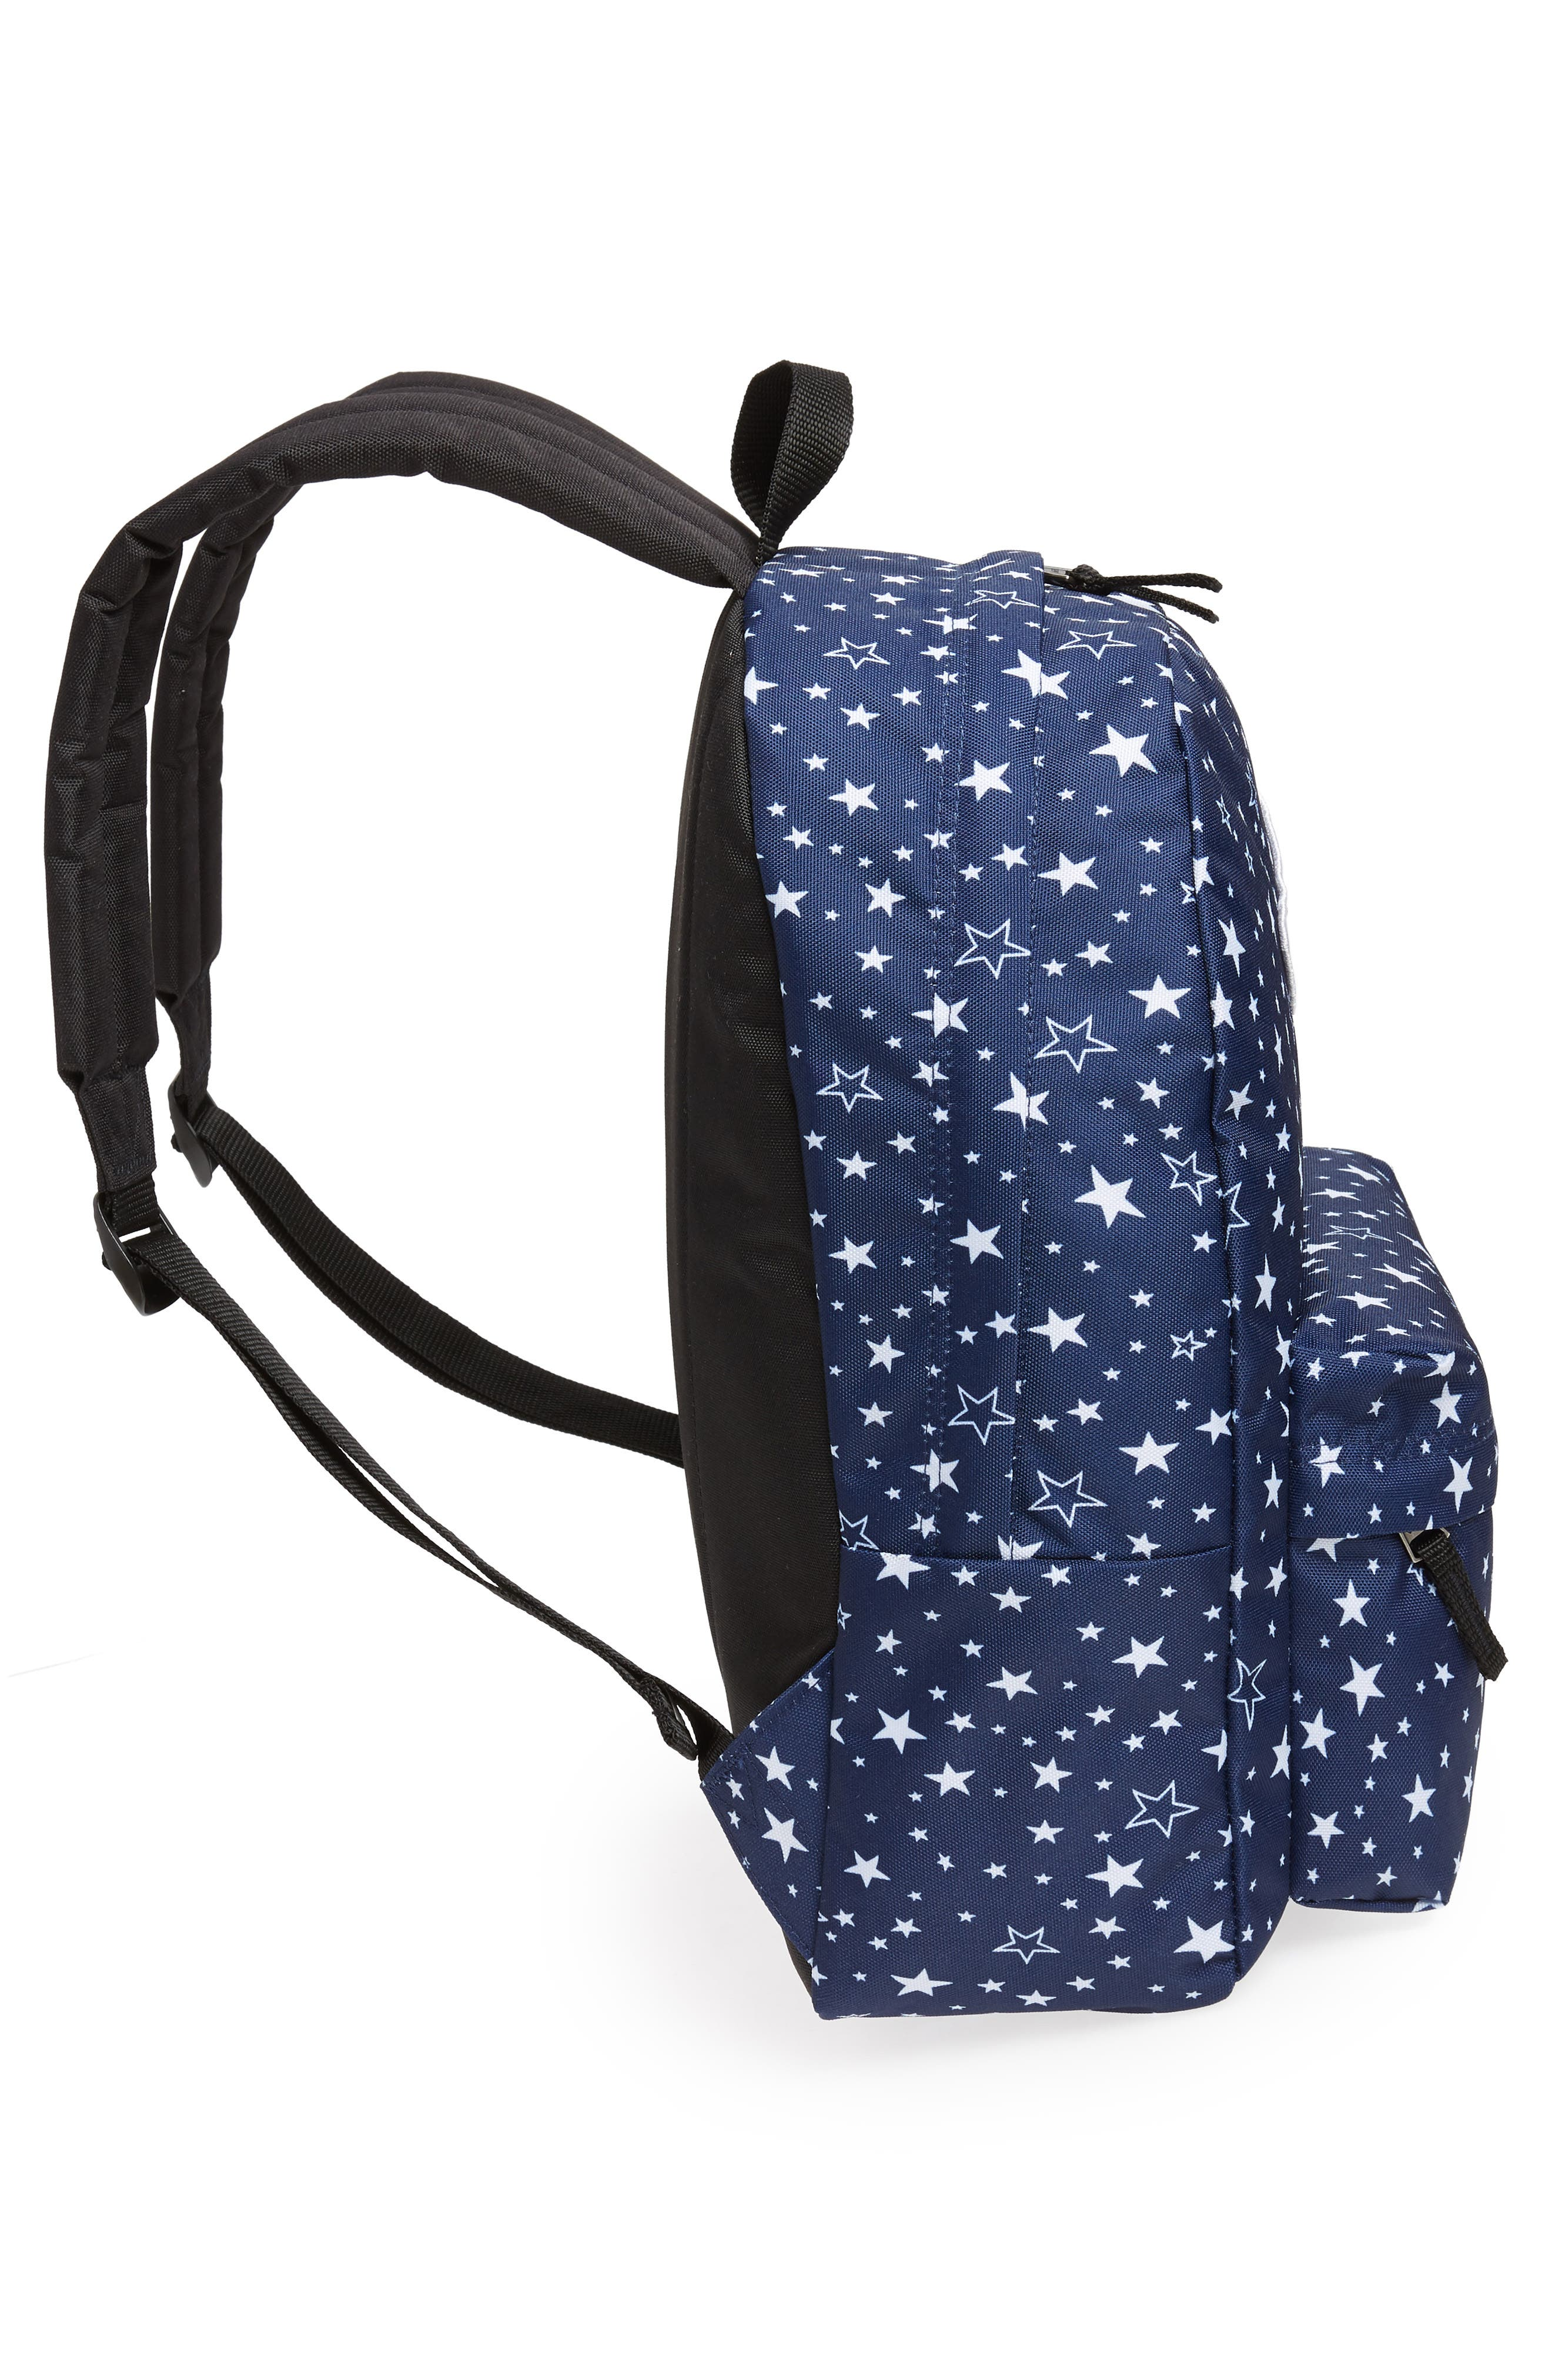 Realm Backpack,                             Alternate thumbnail 5, color,                             MEDIEVAL BLUE STAR